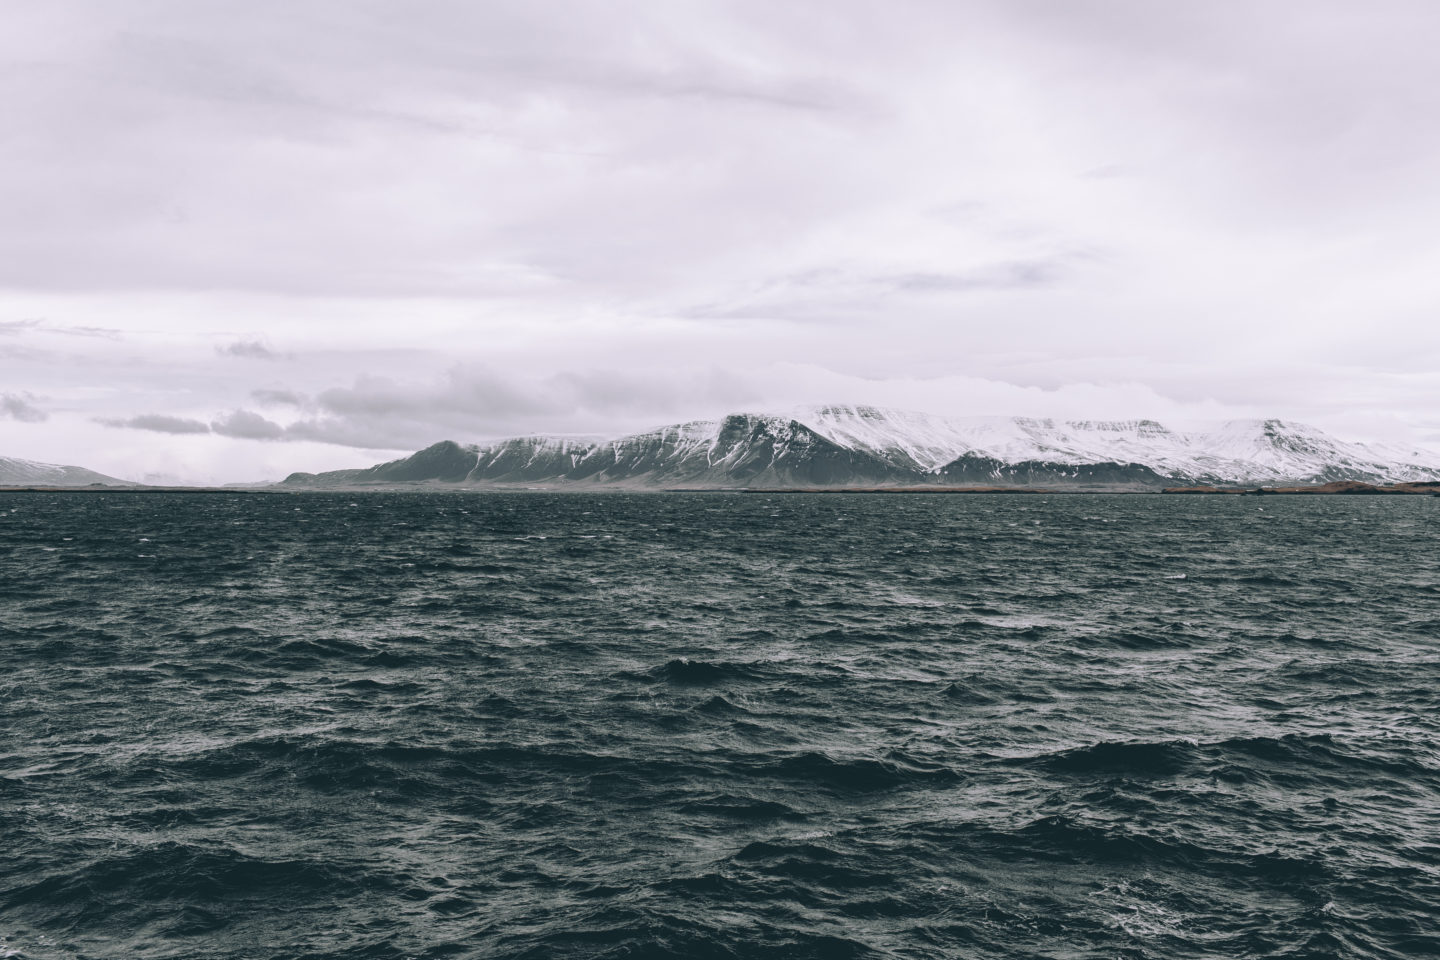 Iceland from the ocean